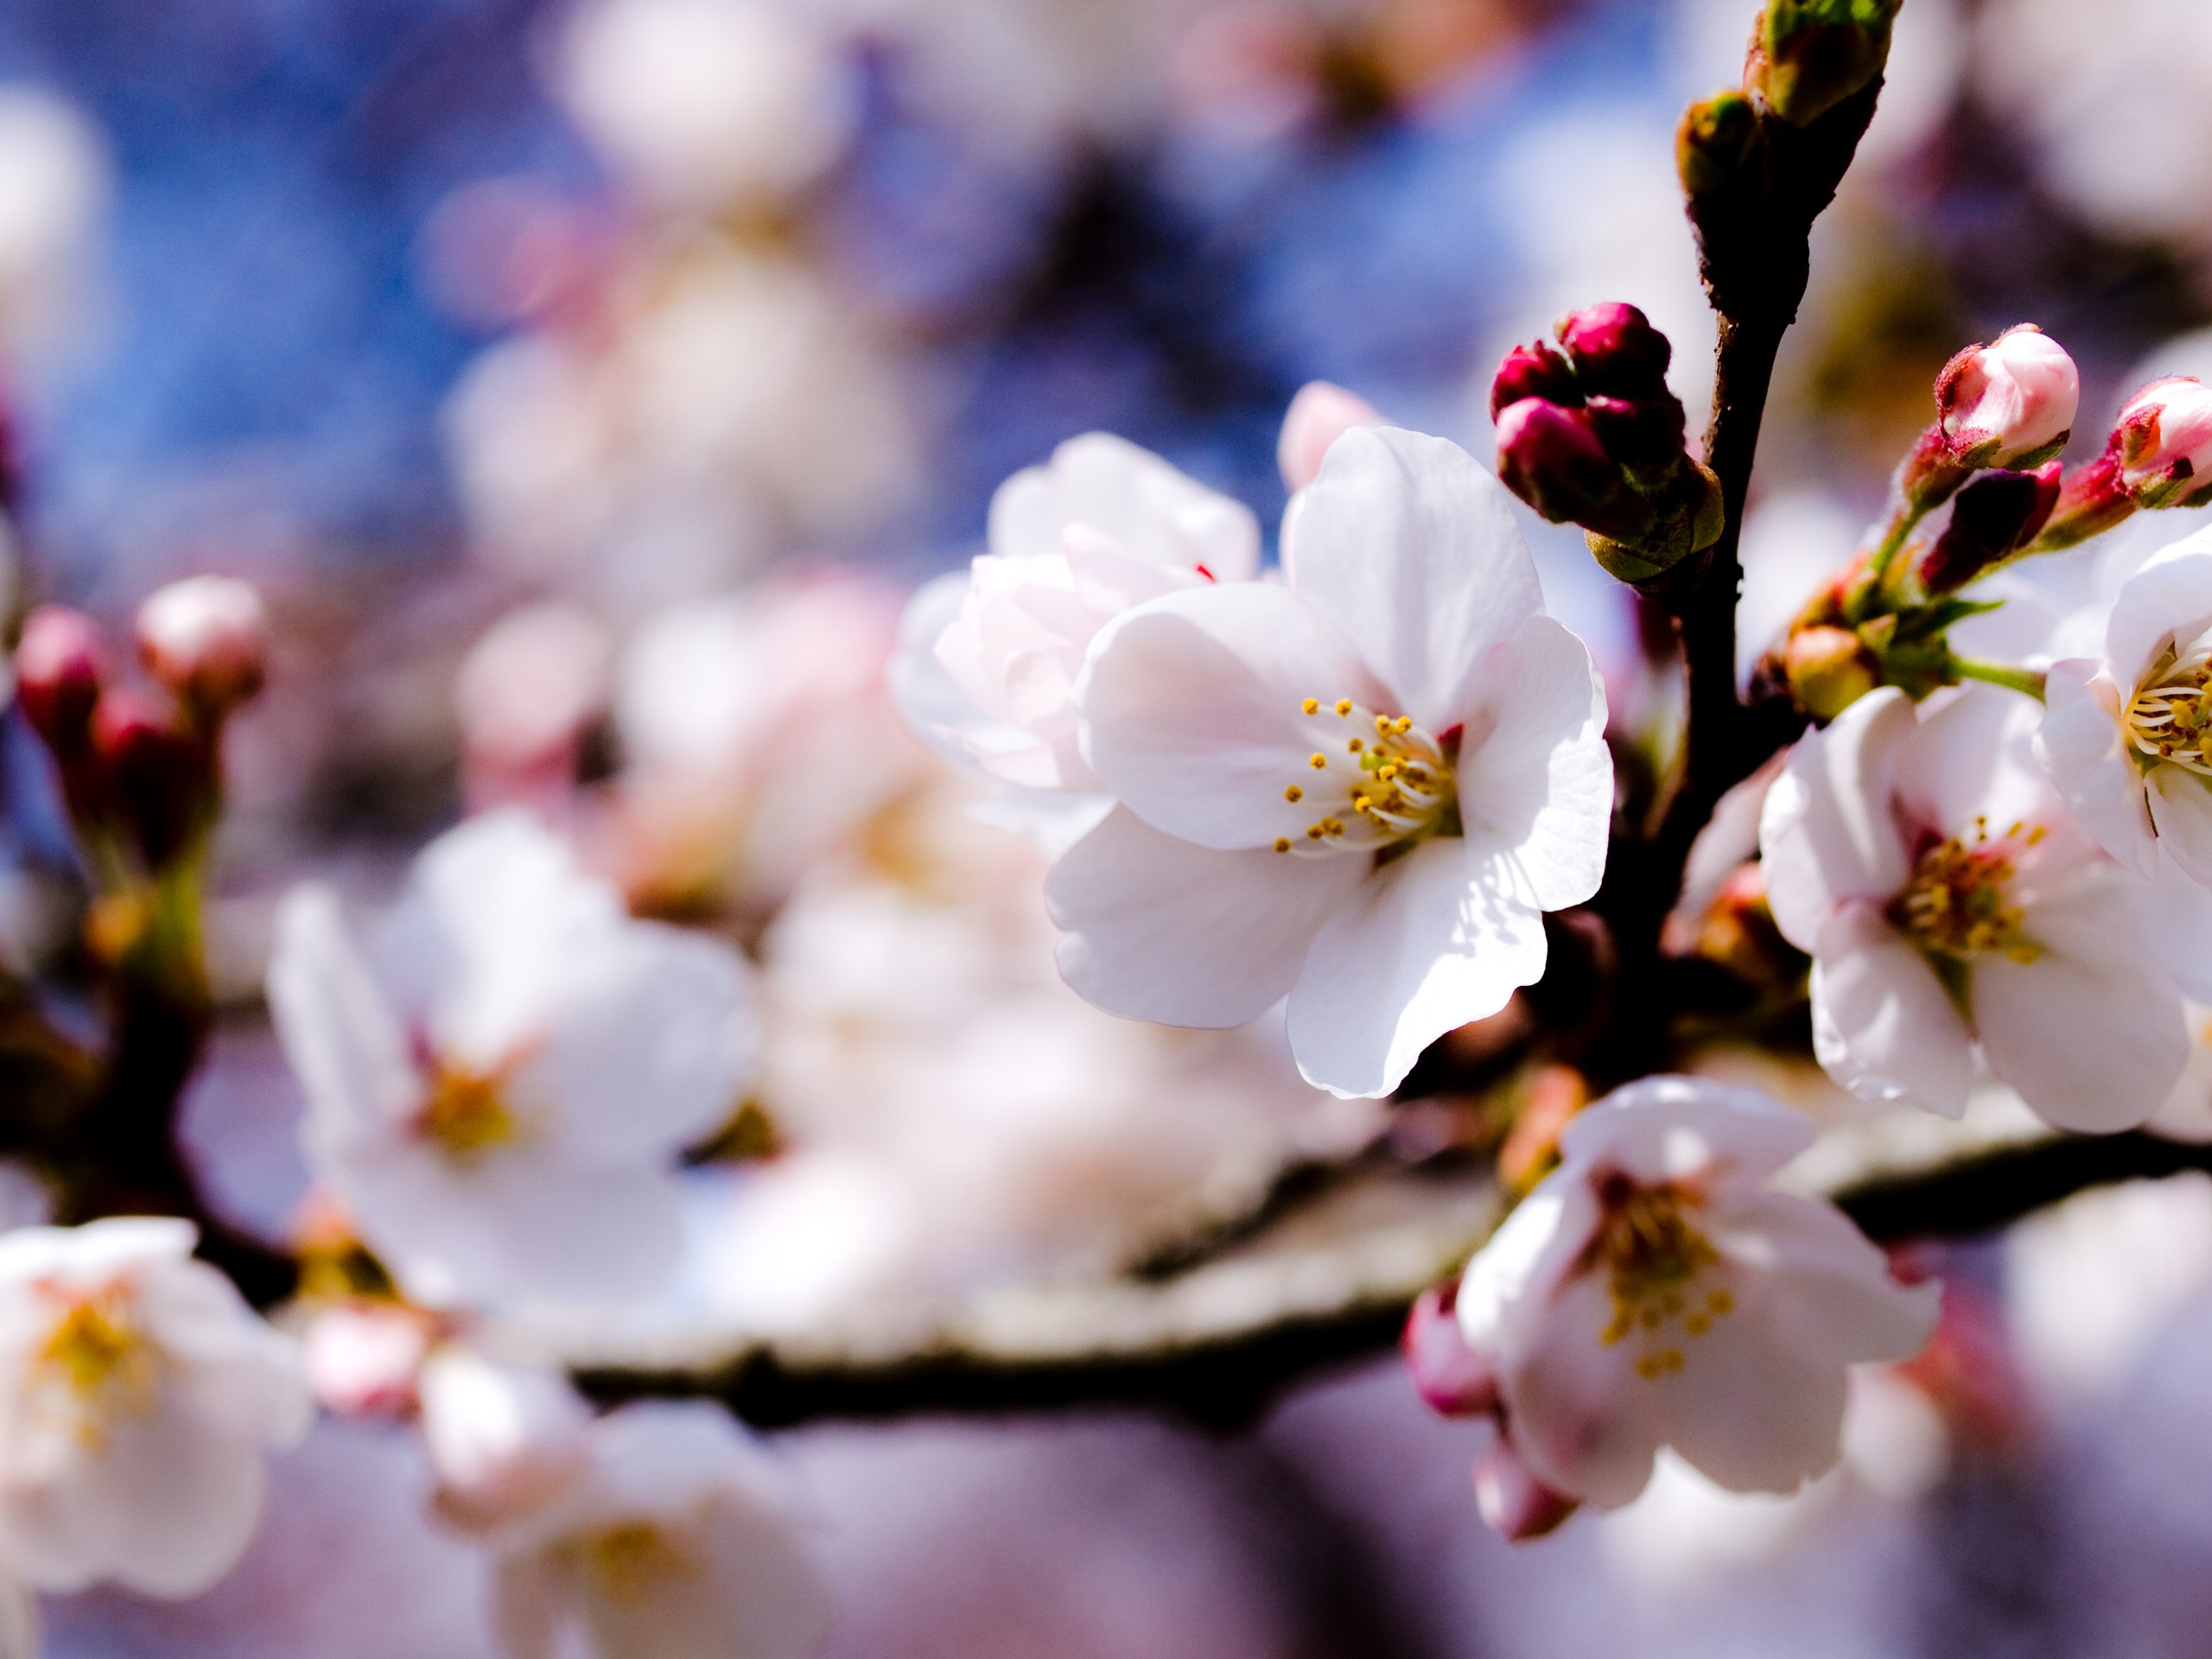 Wallpaper Apple Tree White Flowers Spring 2560x1920 Hd Picture Image